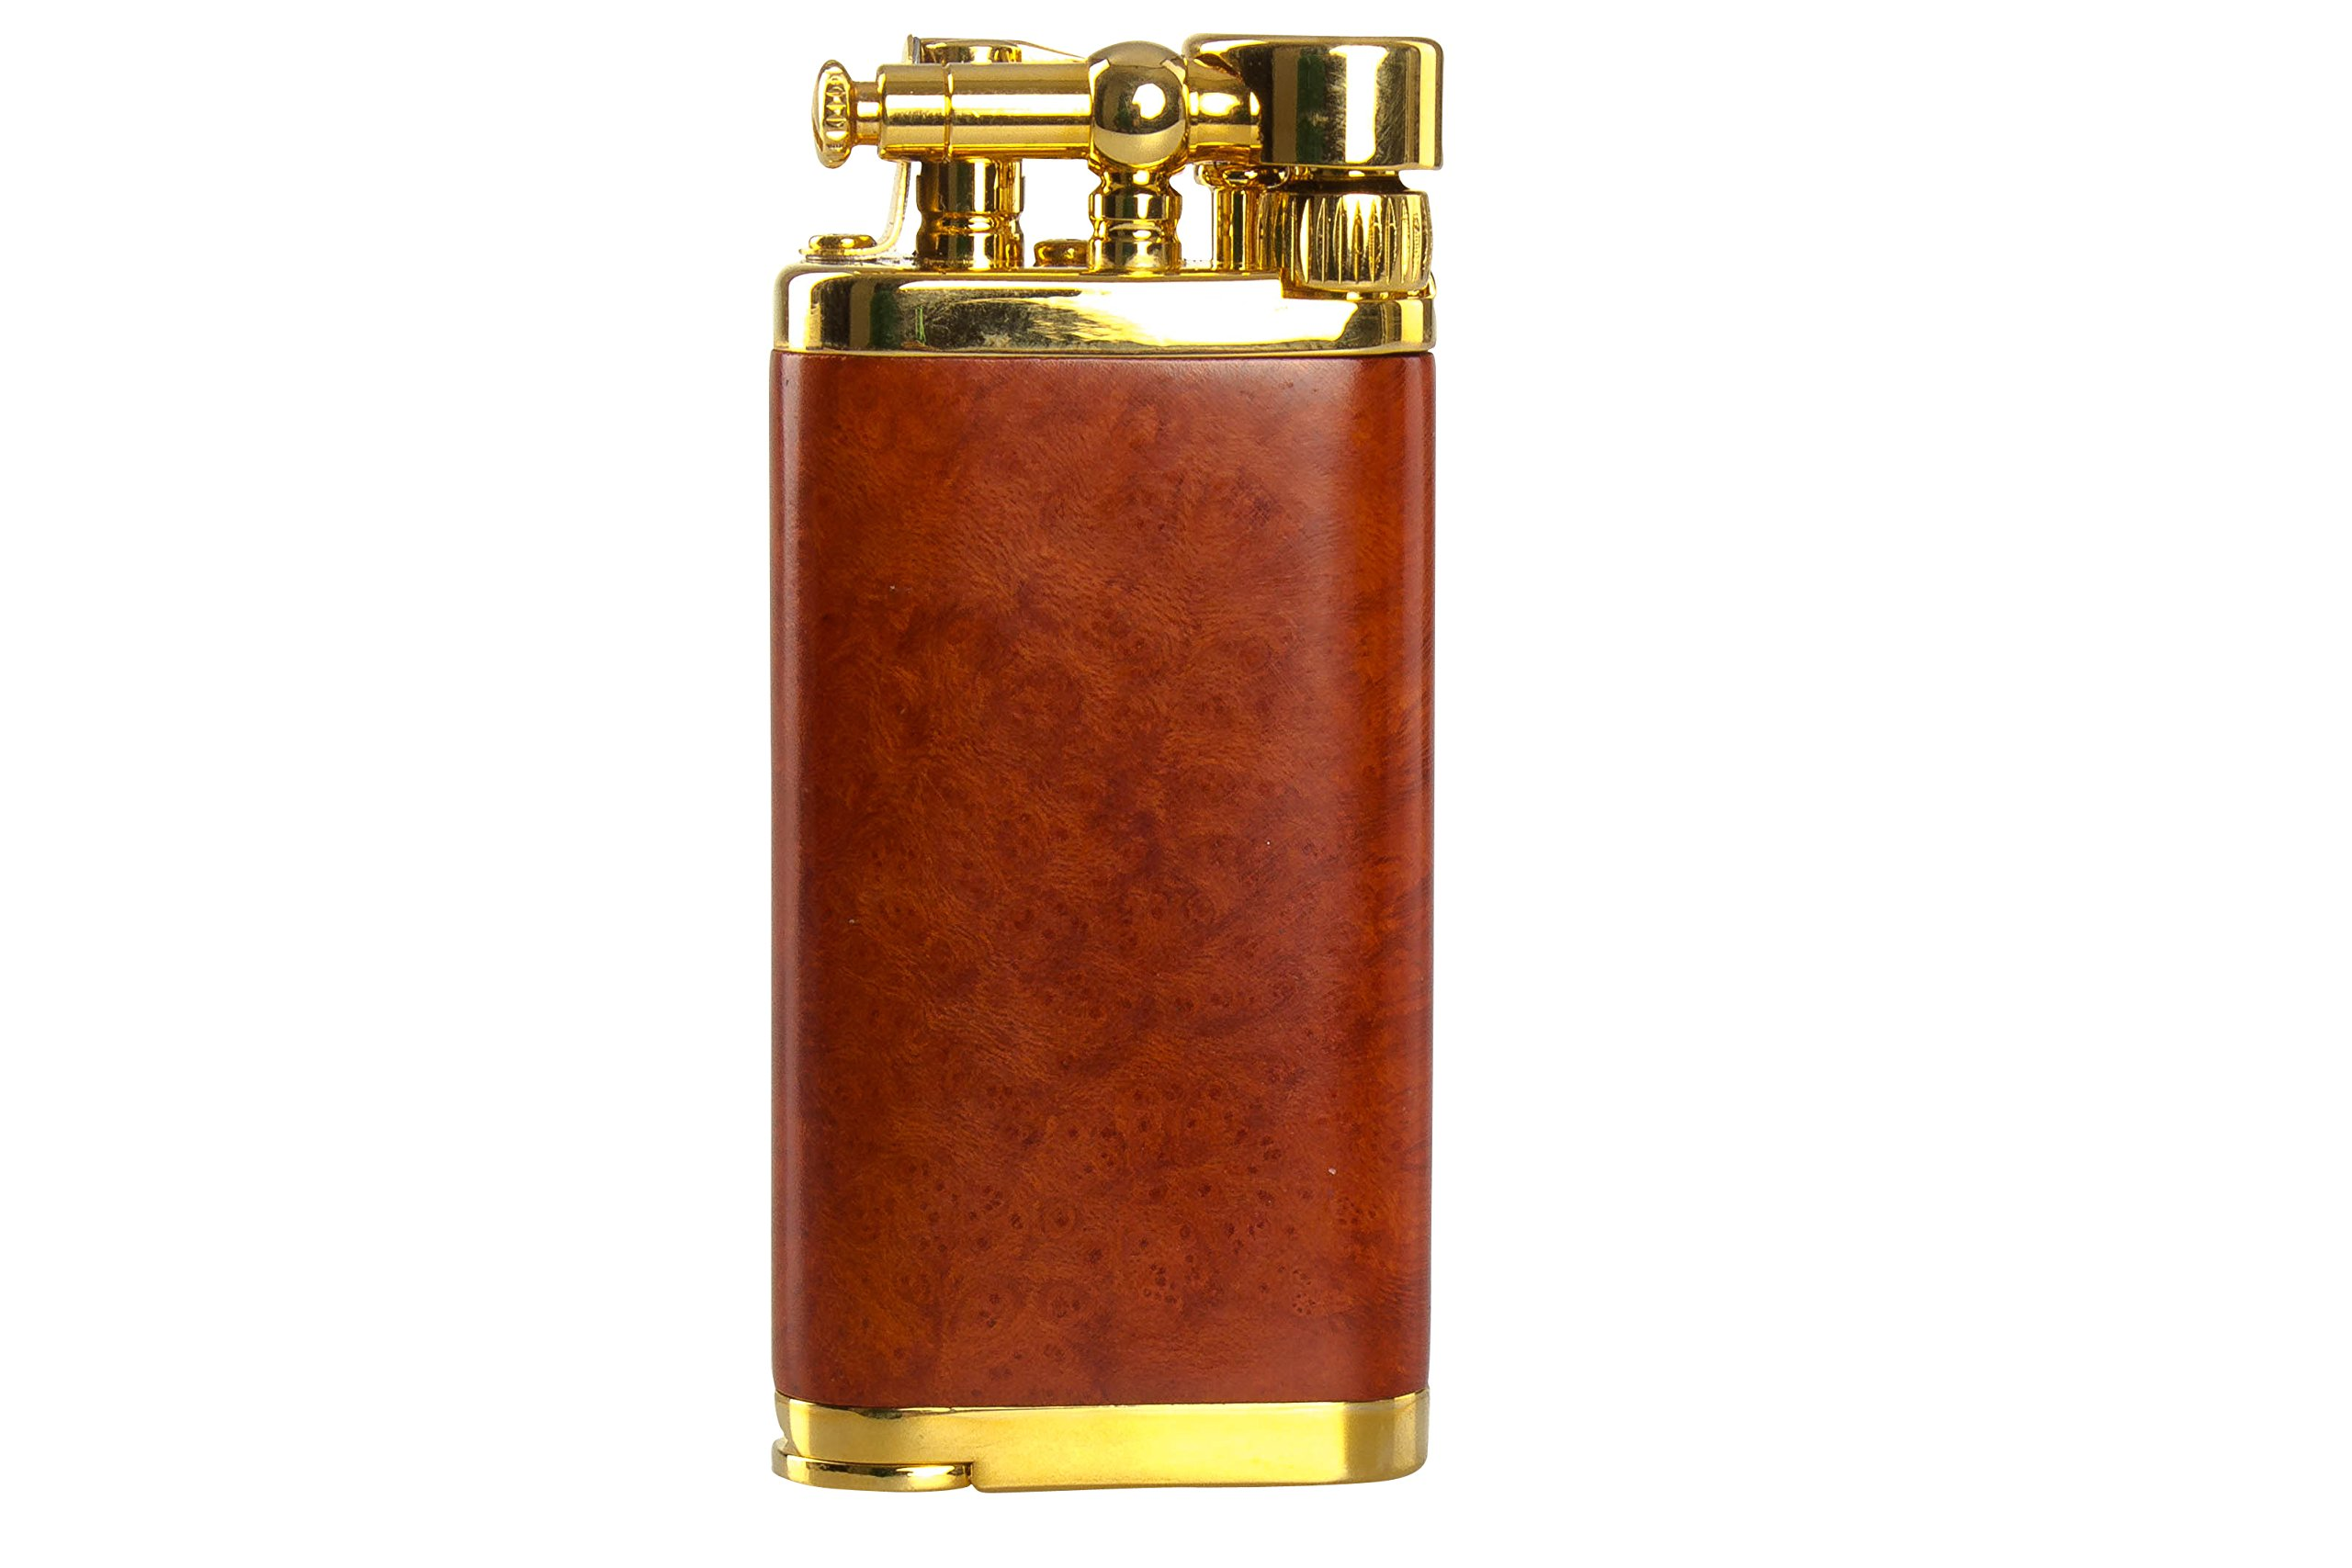 IM Corona Old Boy Gold And Natural Smooth Briar Pipe Lighter by IM Corona (Image #1)